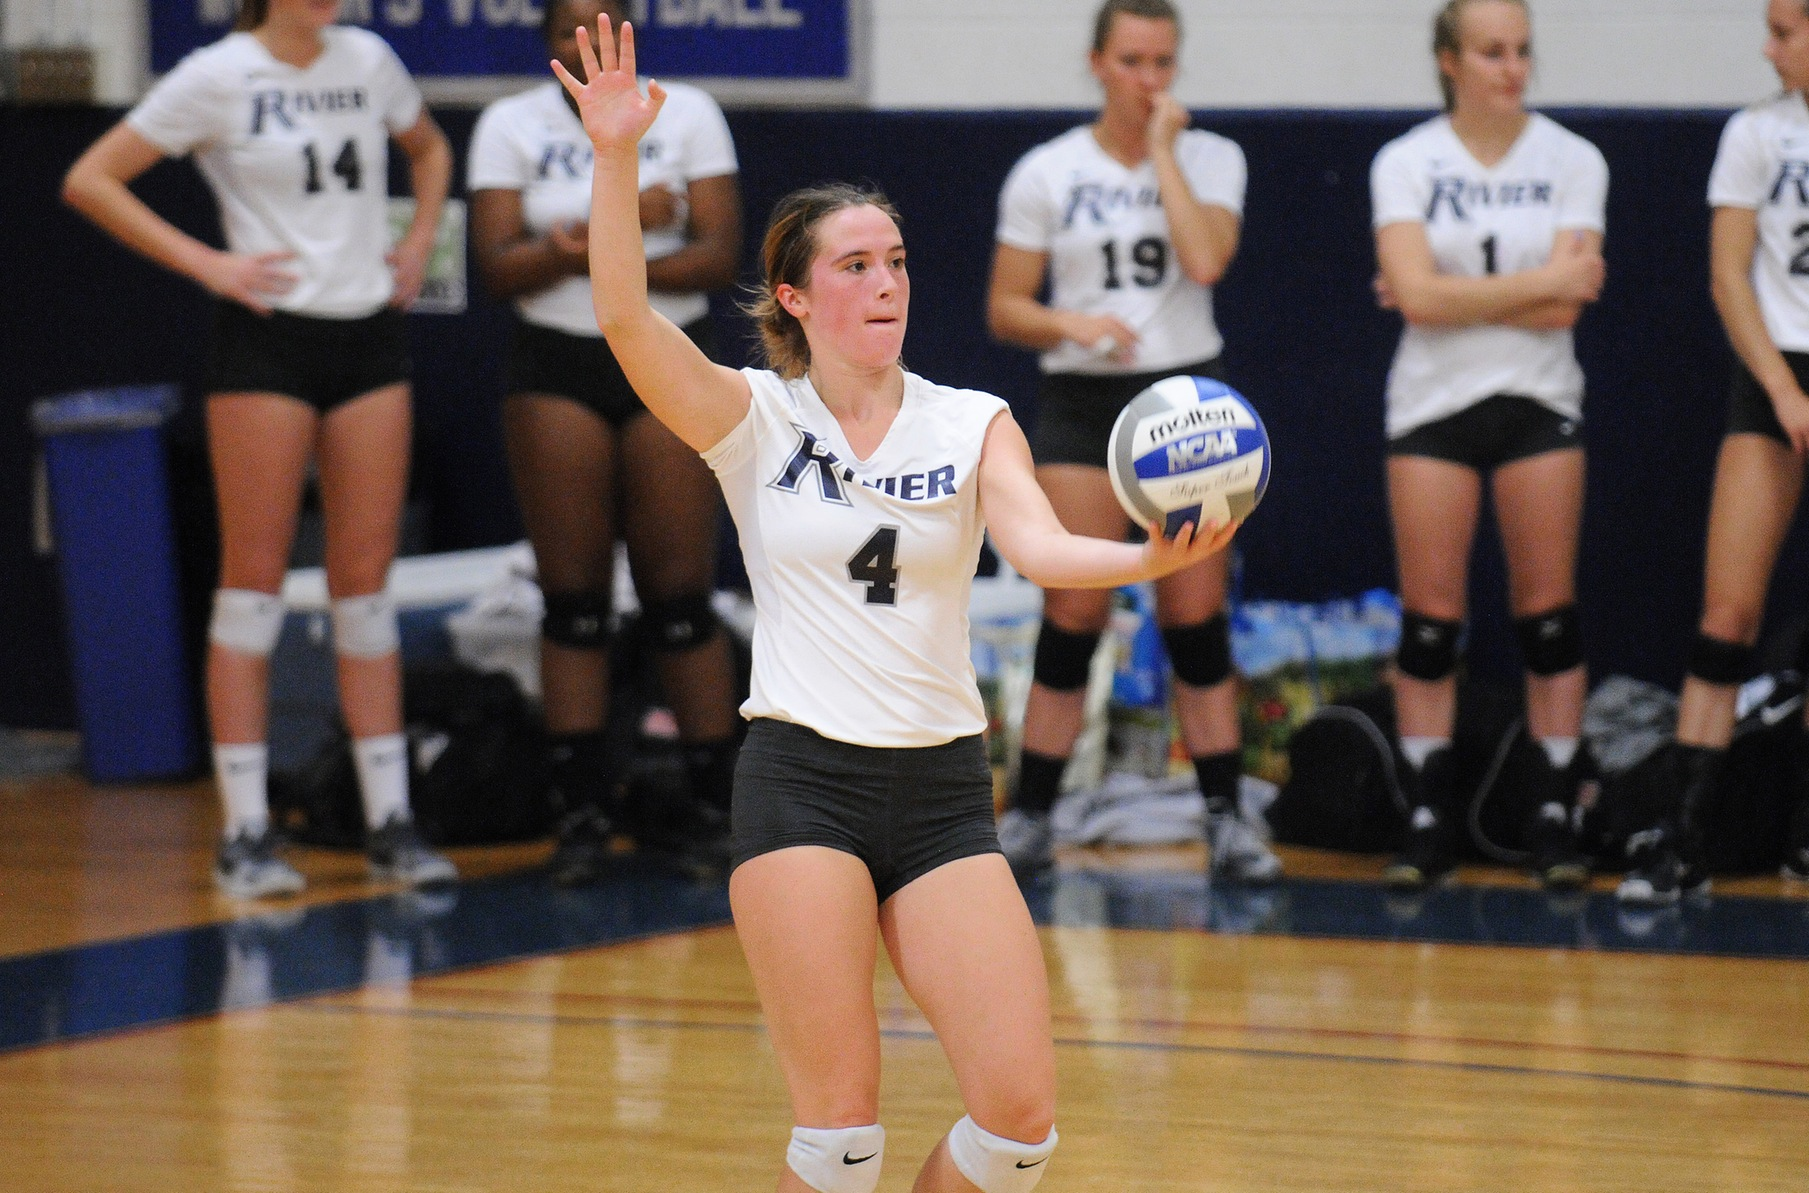 Women's Volleyball: Raiders take two from Colby-Sawyer & Lasell